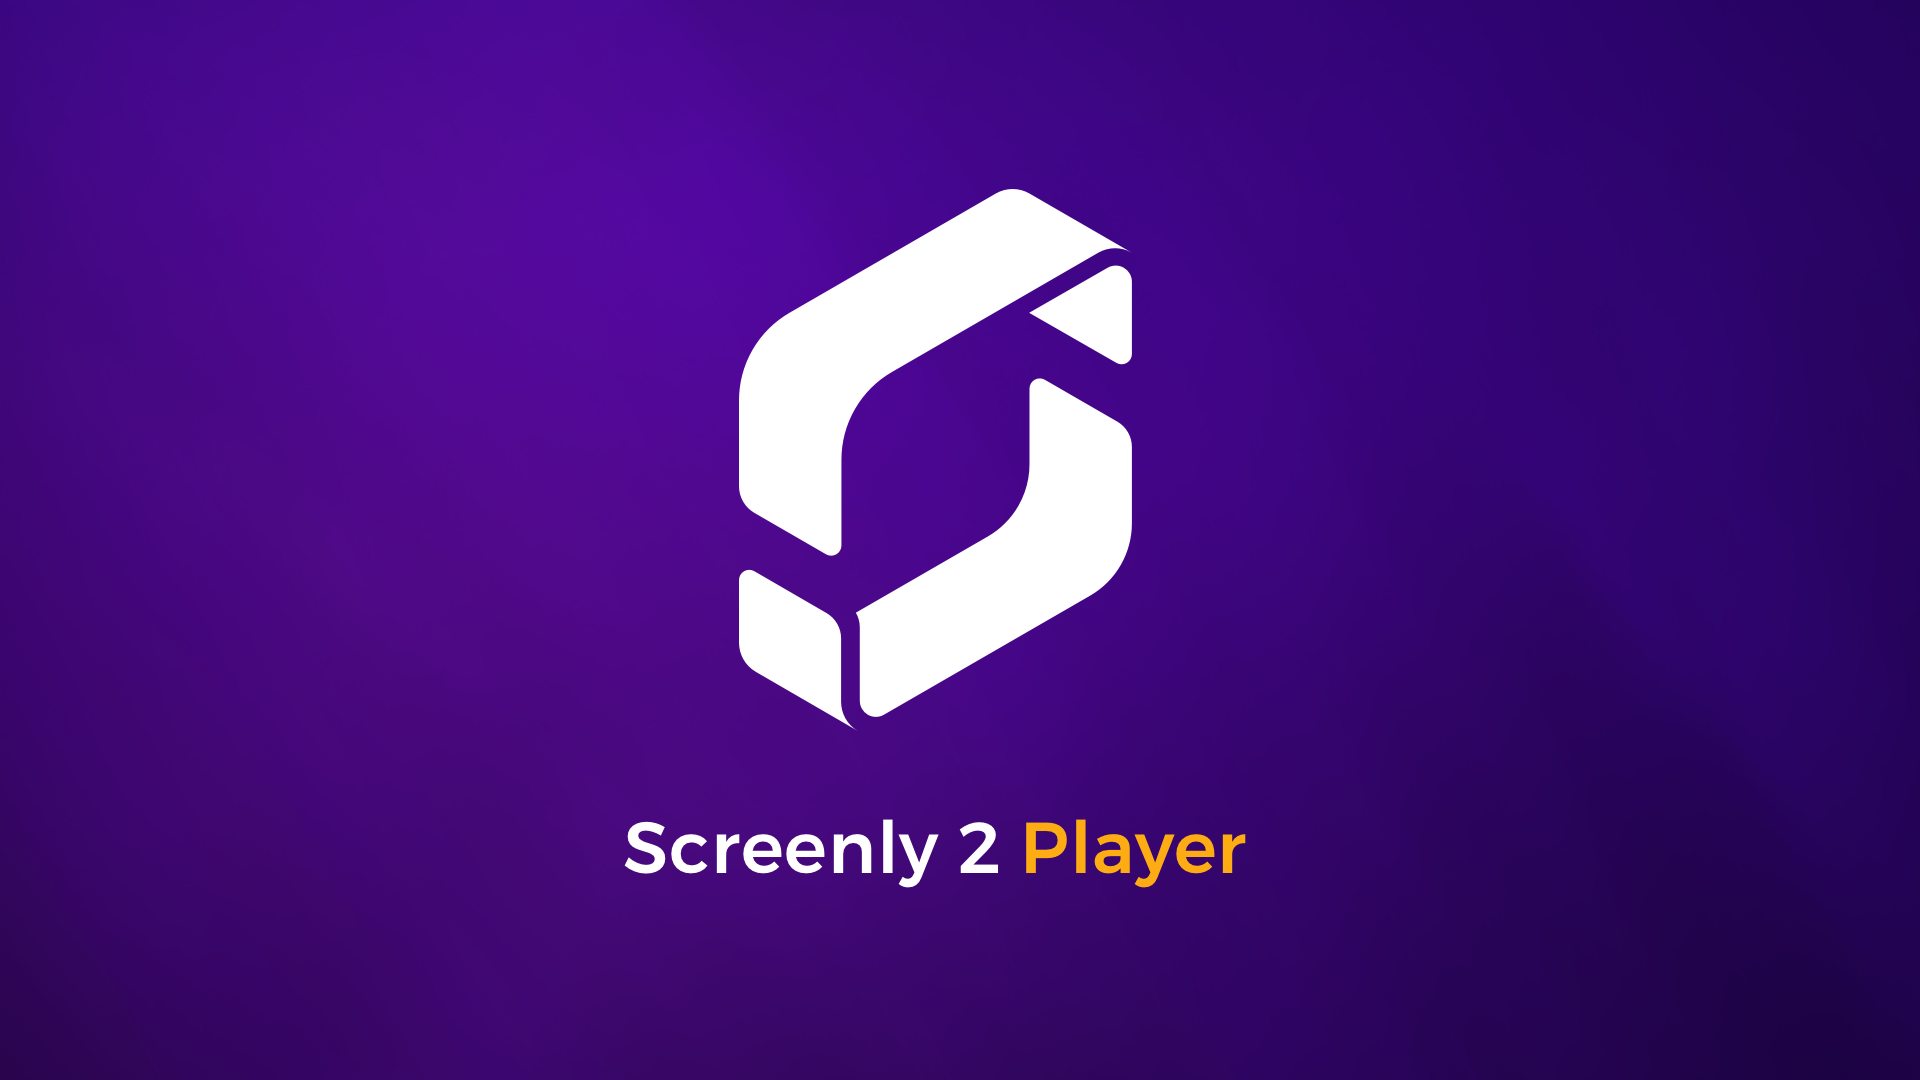 Screenly 2 Player